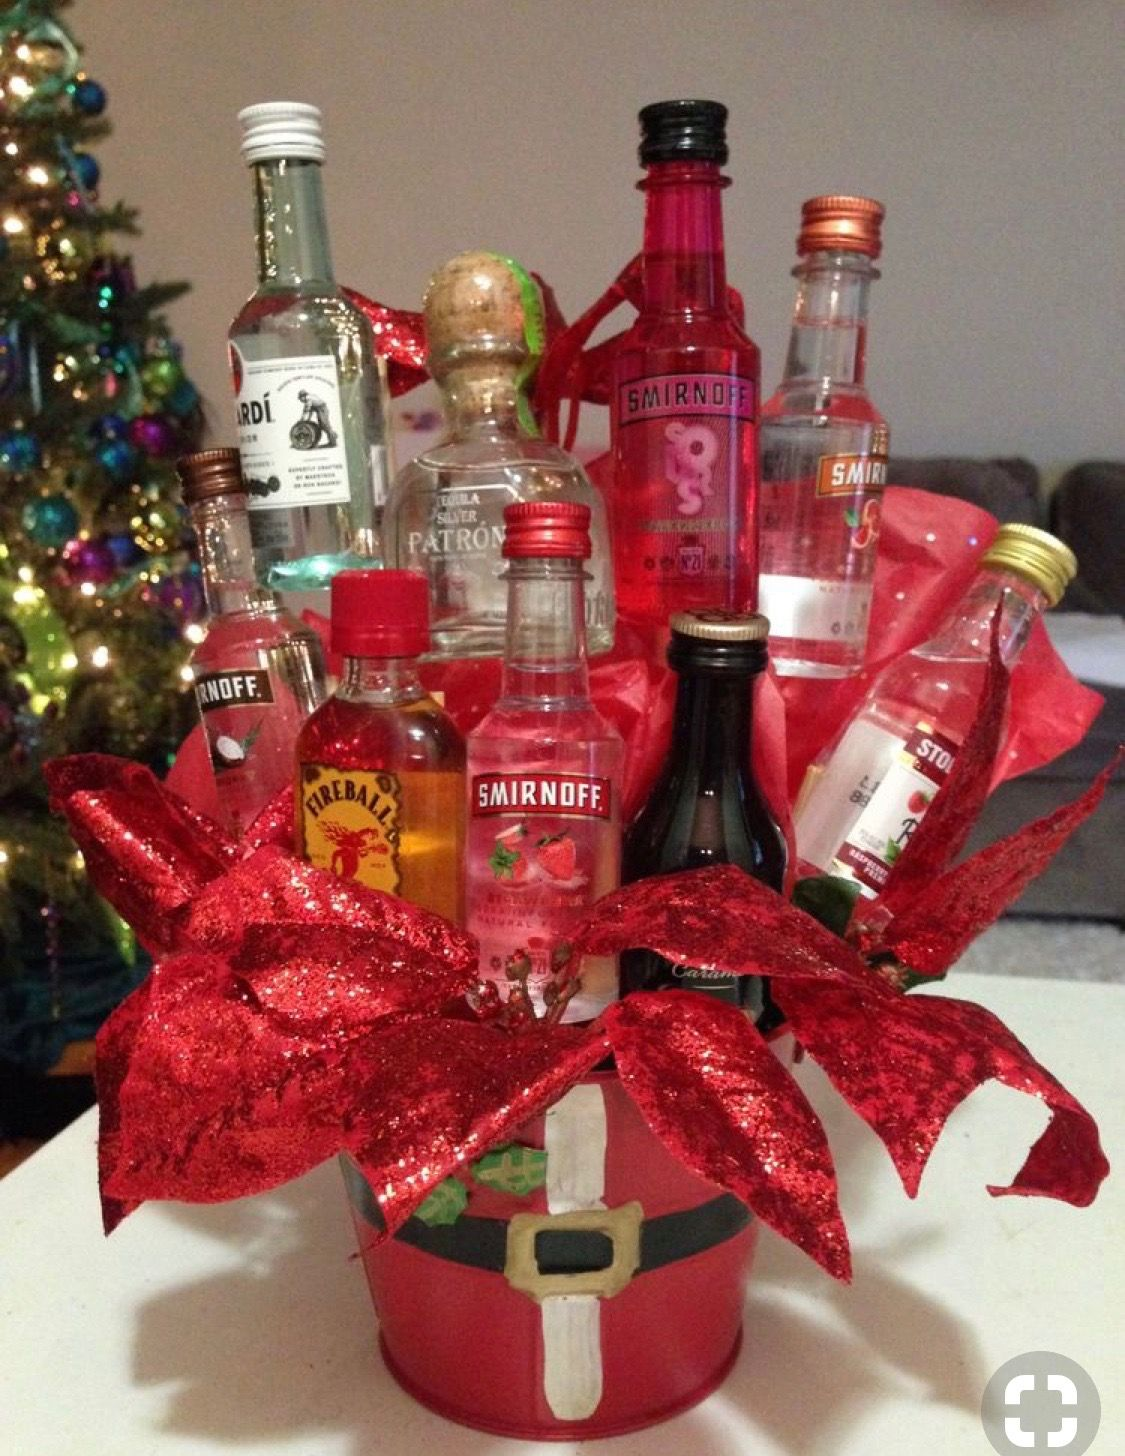 Pin By Dianne Sellars On Holiday Shopping Ideas Alcohol Gift Baskets Liquor Gift Baskets Liquor Bouquet